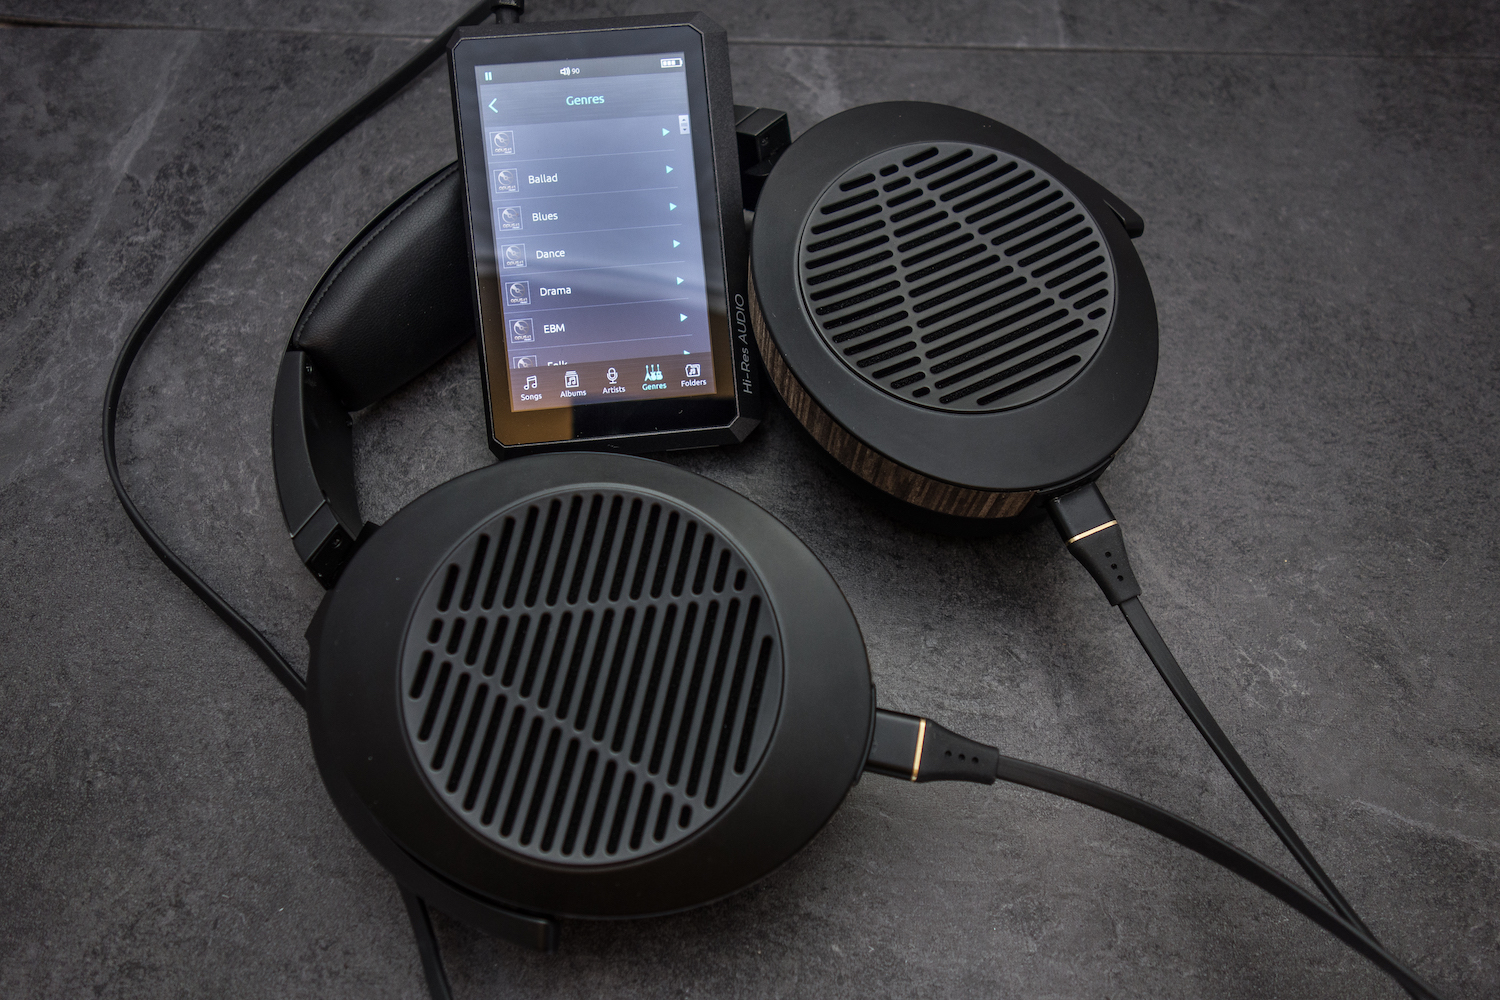 Listening to the Opus#1 high resolution audio player with the Audeze EL-8 audiophile headphones. A potent combo.